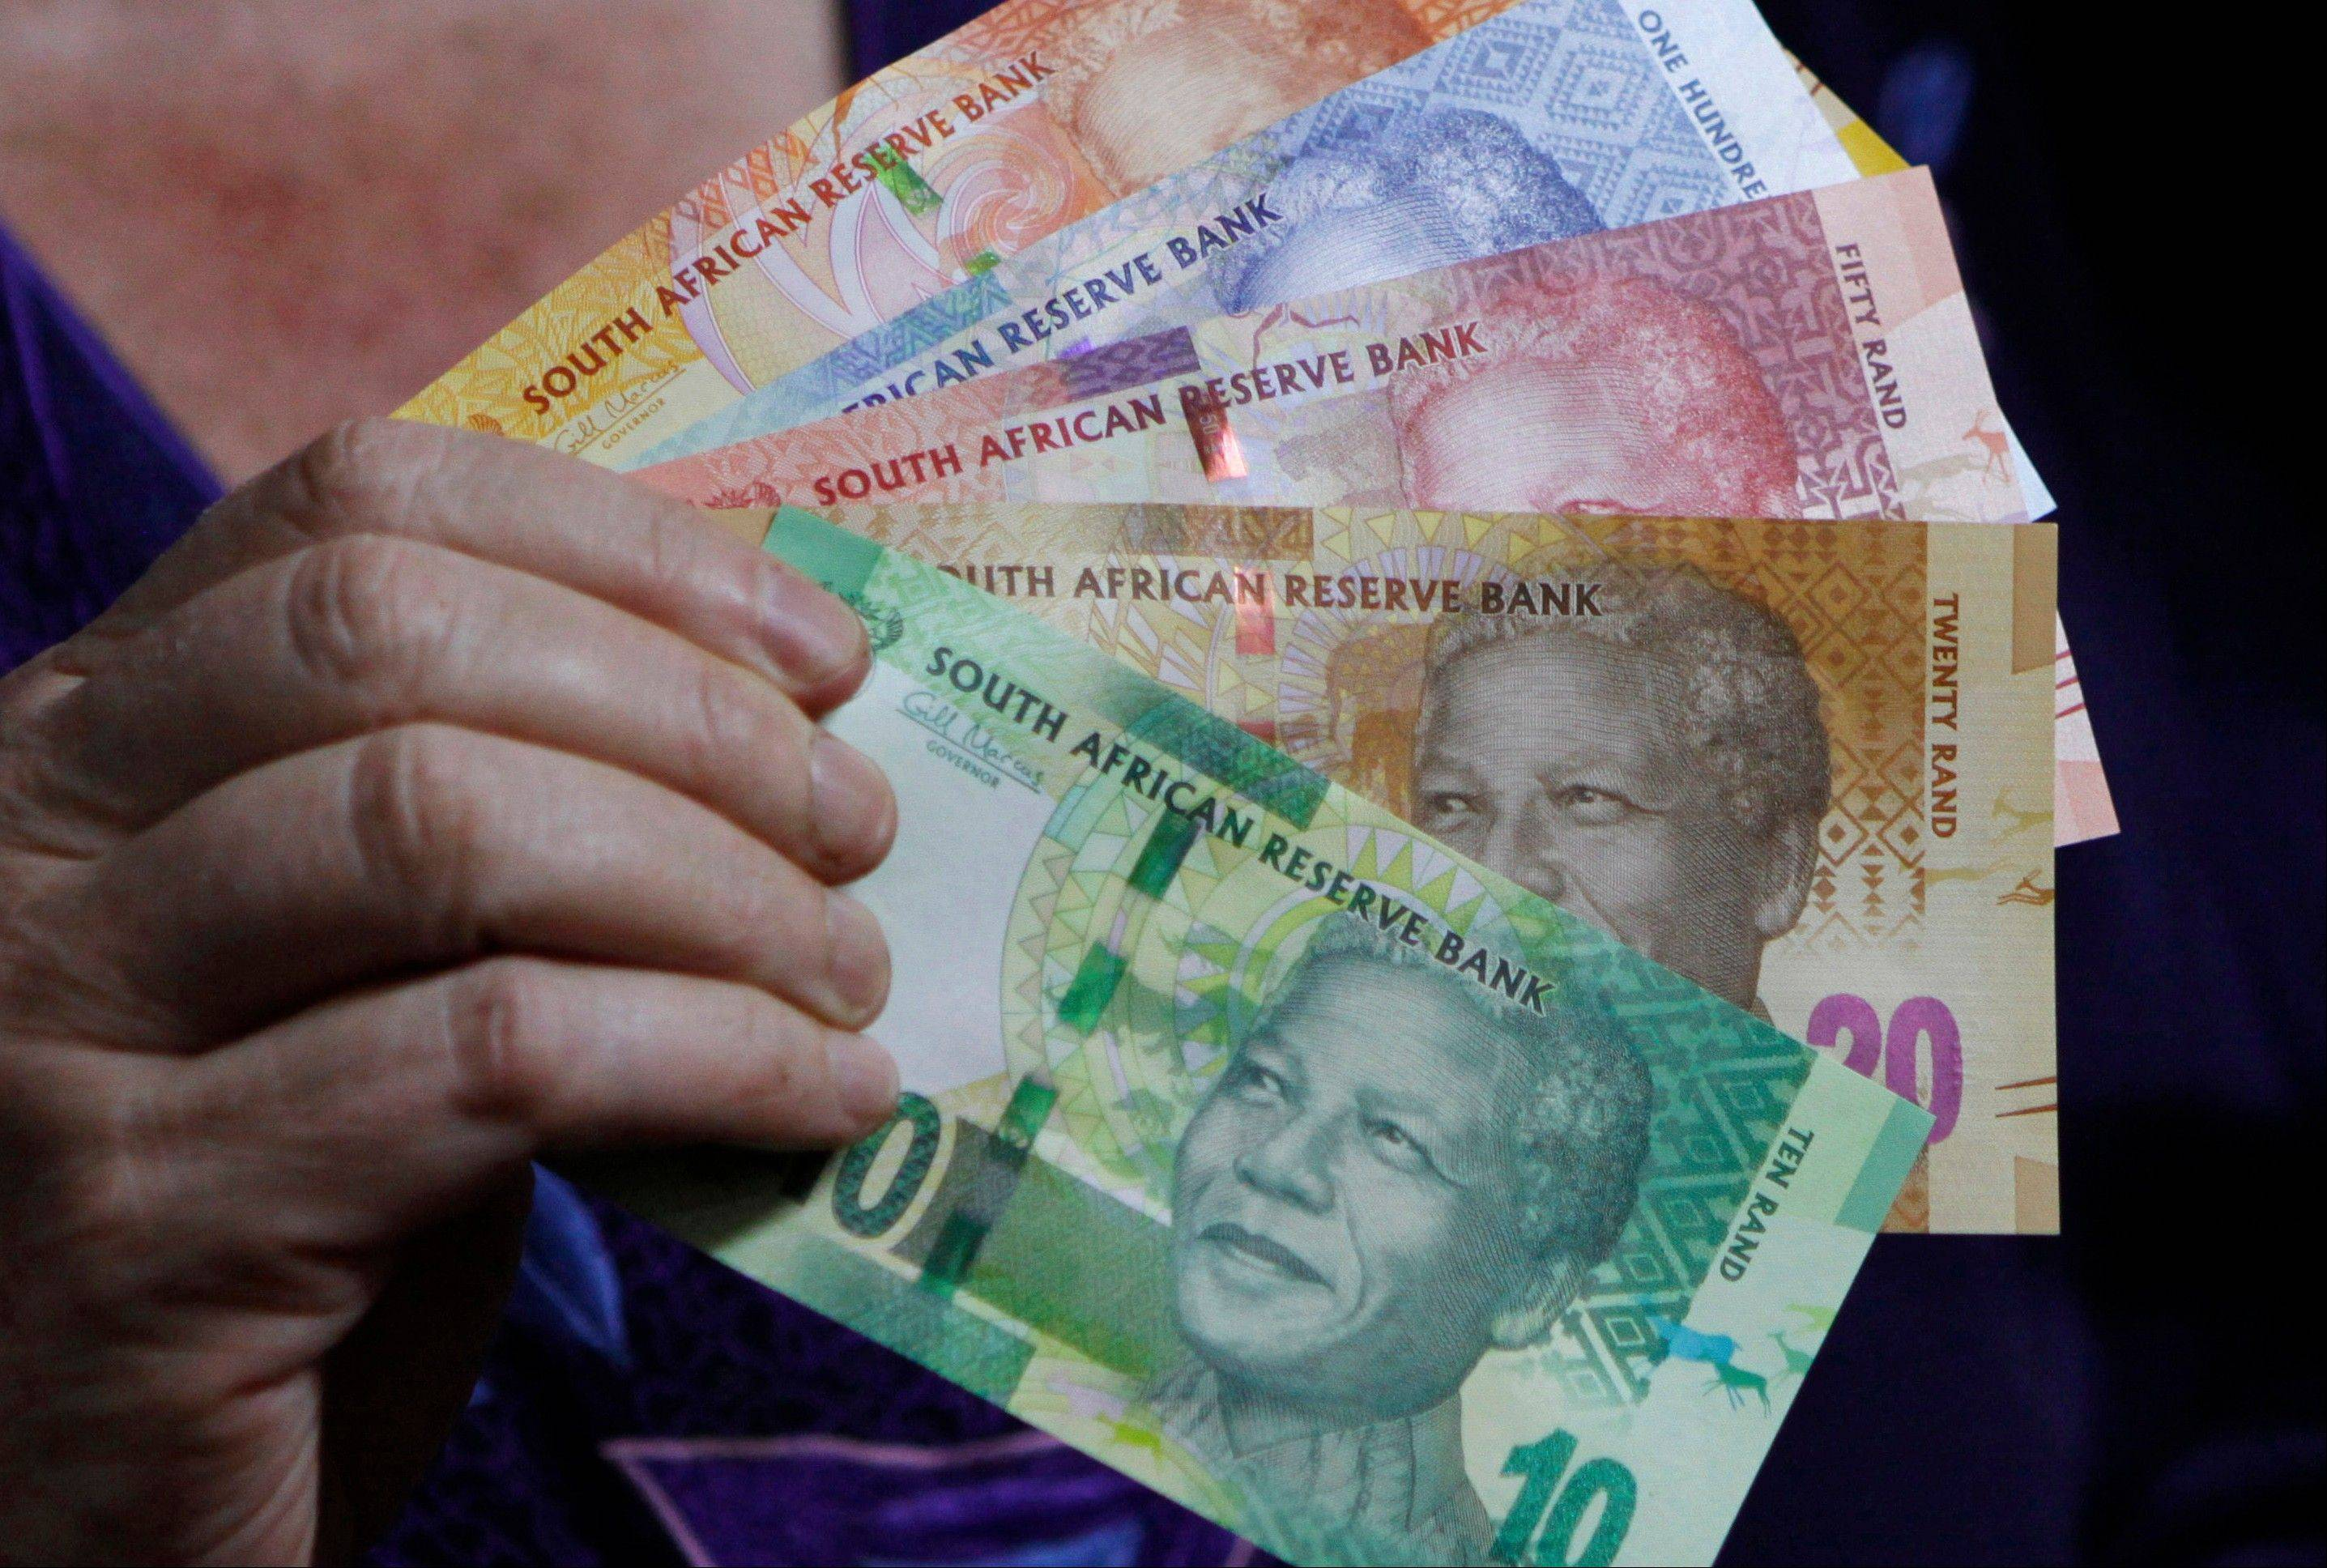 Reserve Bank Governor Gill Marcus holds bank notes bearing the image of former President Nelson Mandela in Pretoria, South Africa, in this Nov. 6, 2012 file photo. Across South Africa Mandela�s face is a familiar sight, beaming from T-shirts, drink coasters and bank notes.